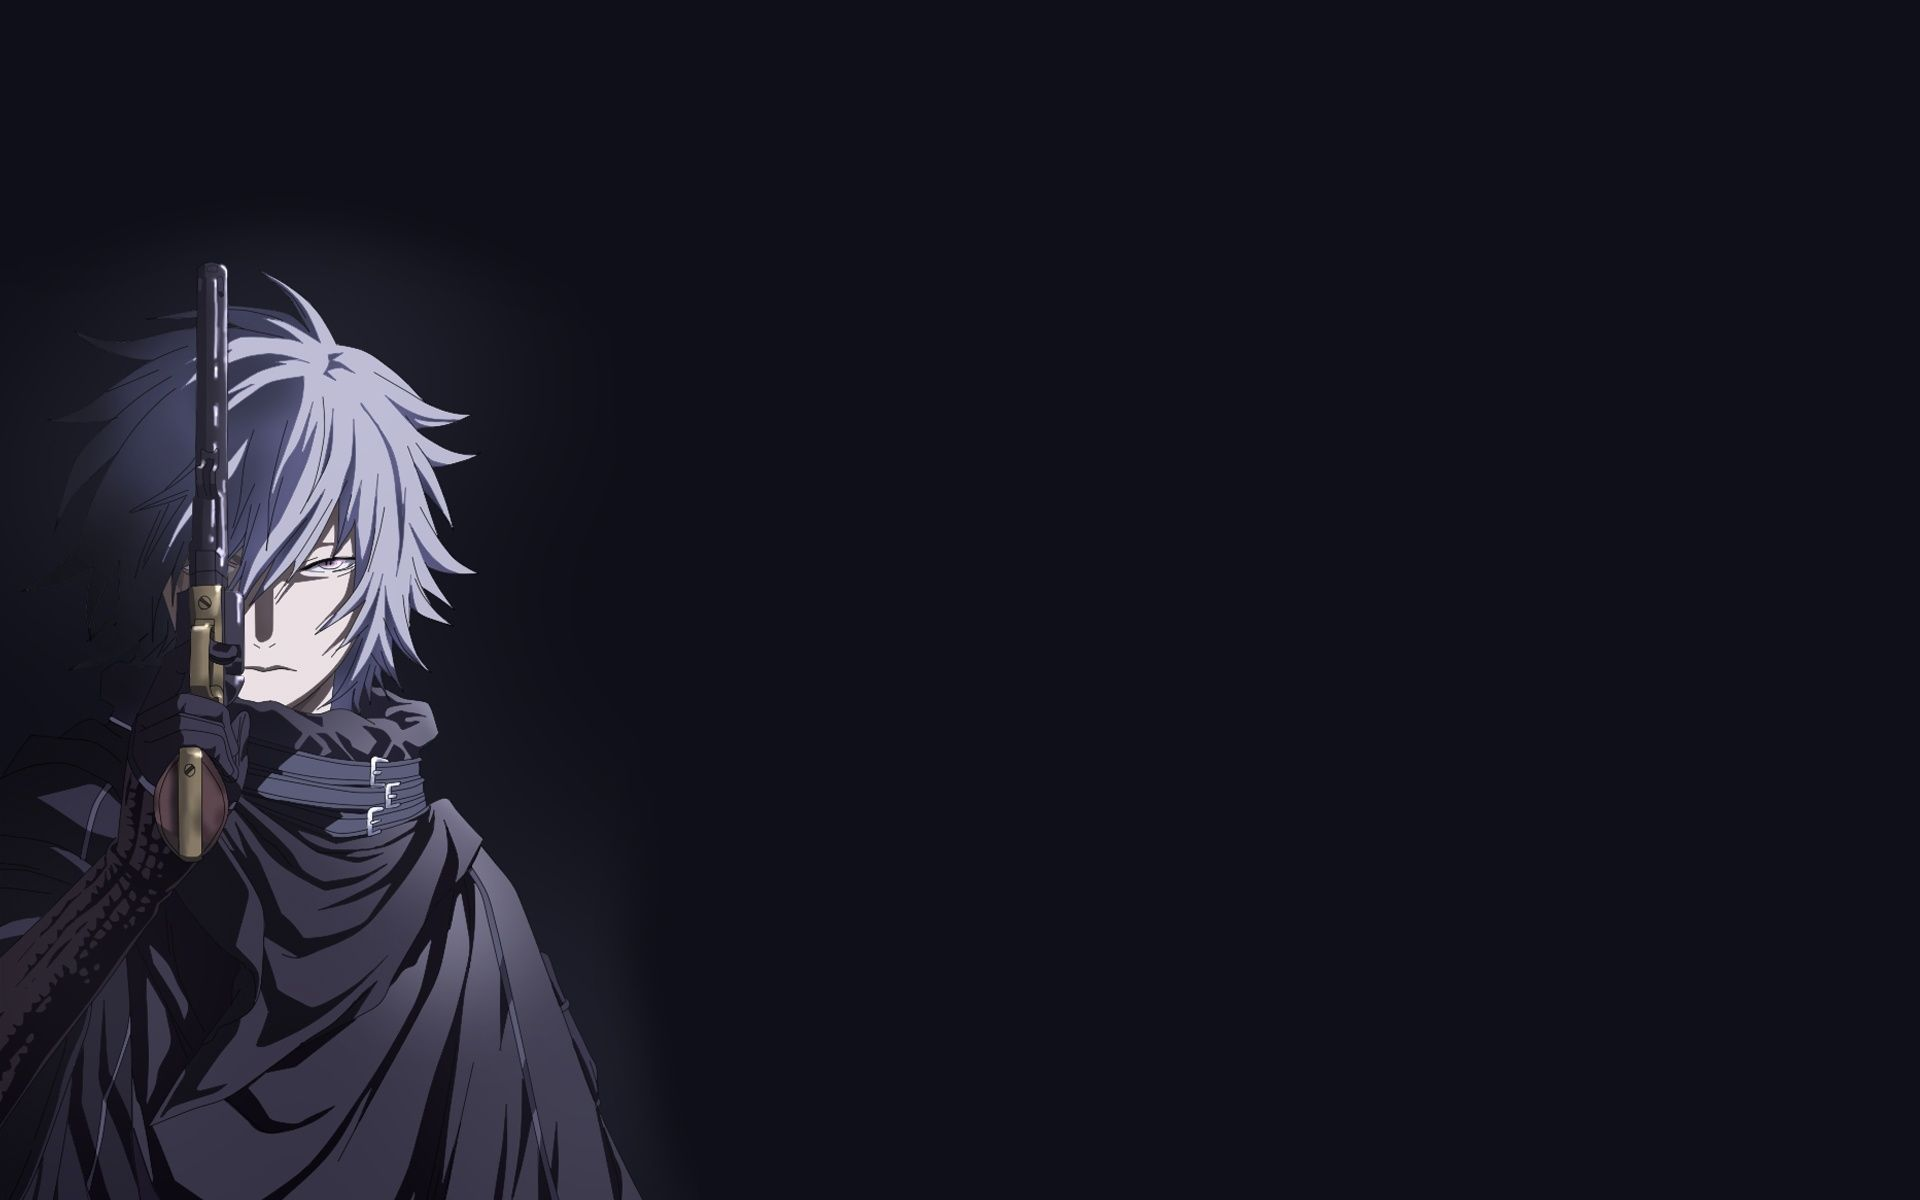 dark anime desktop wallpaper 60129 1920x1200 px ~ hdwallsource